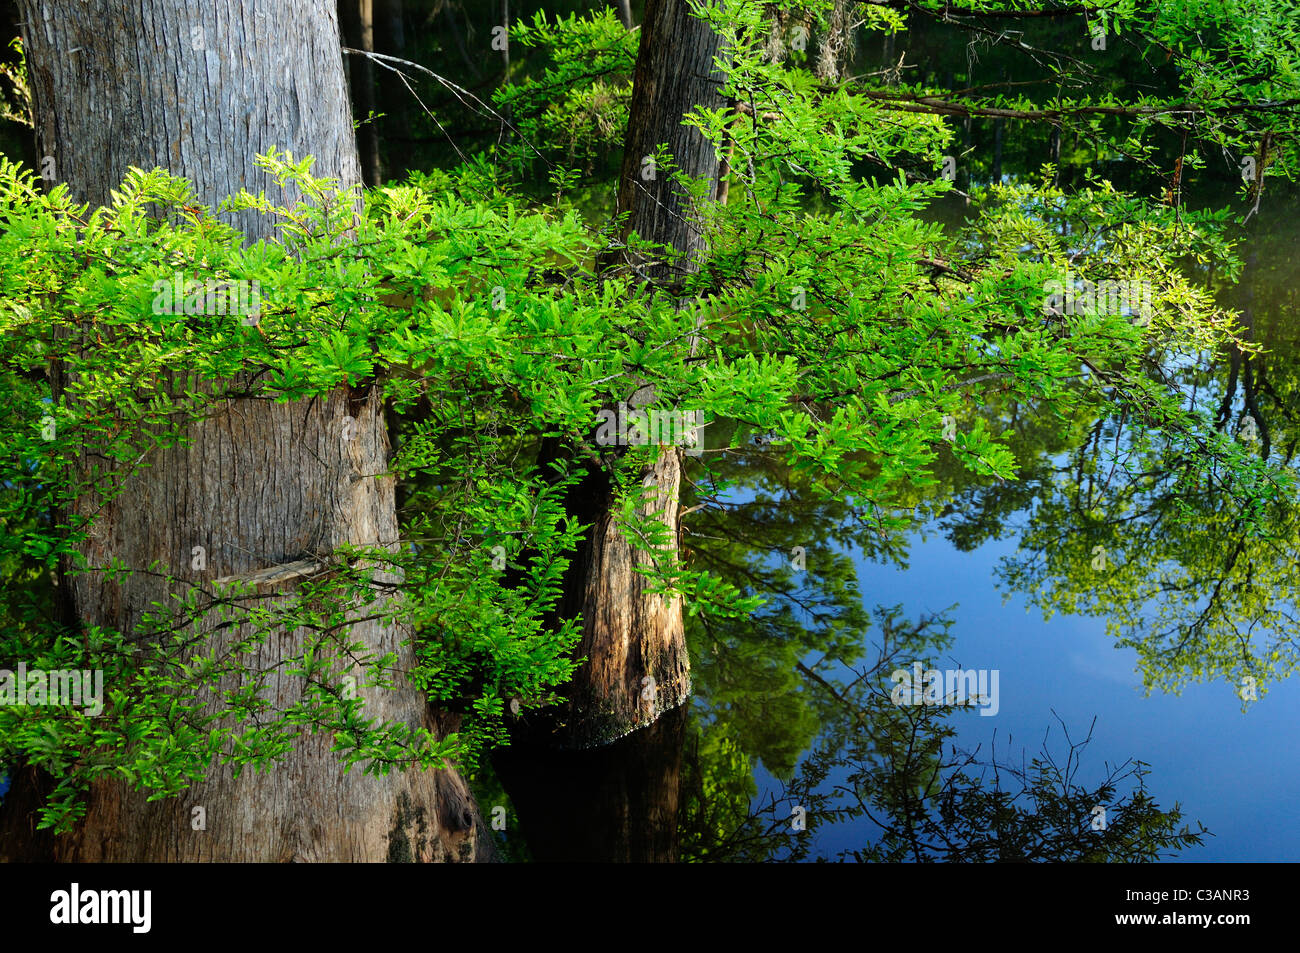 Bald cypress, Taxodium distichum, Morrison Springs, Walton County, Florida - Stock Image